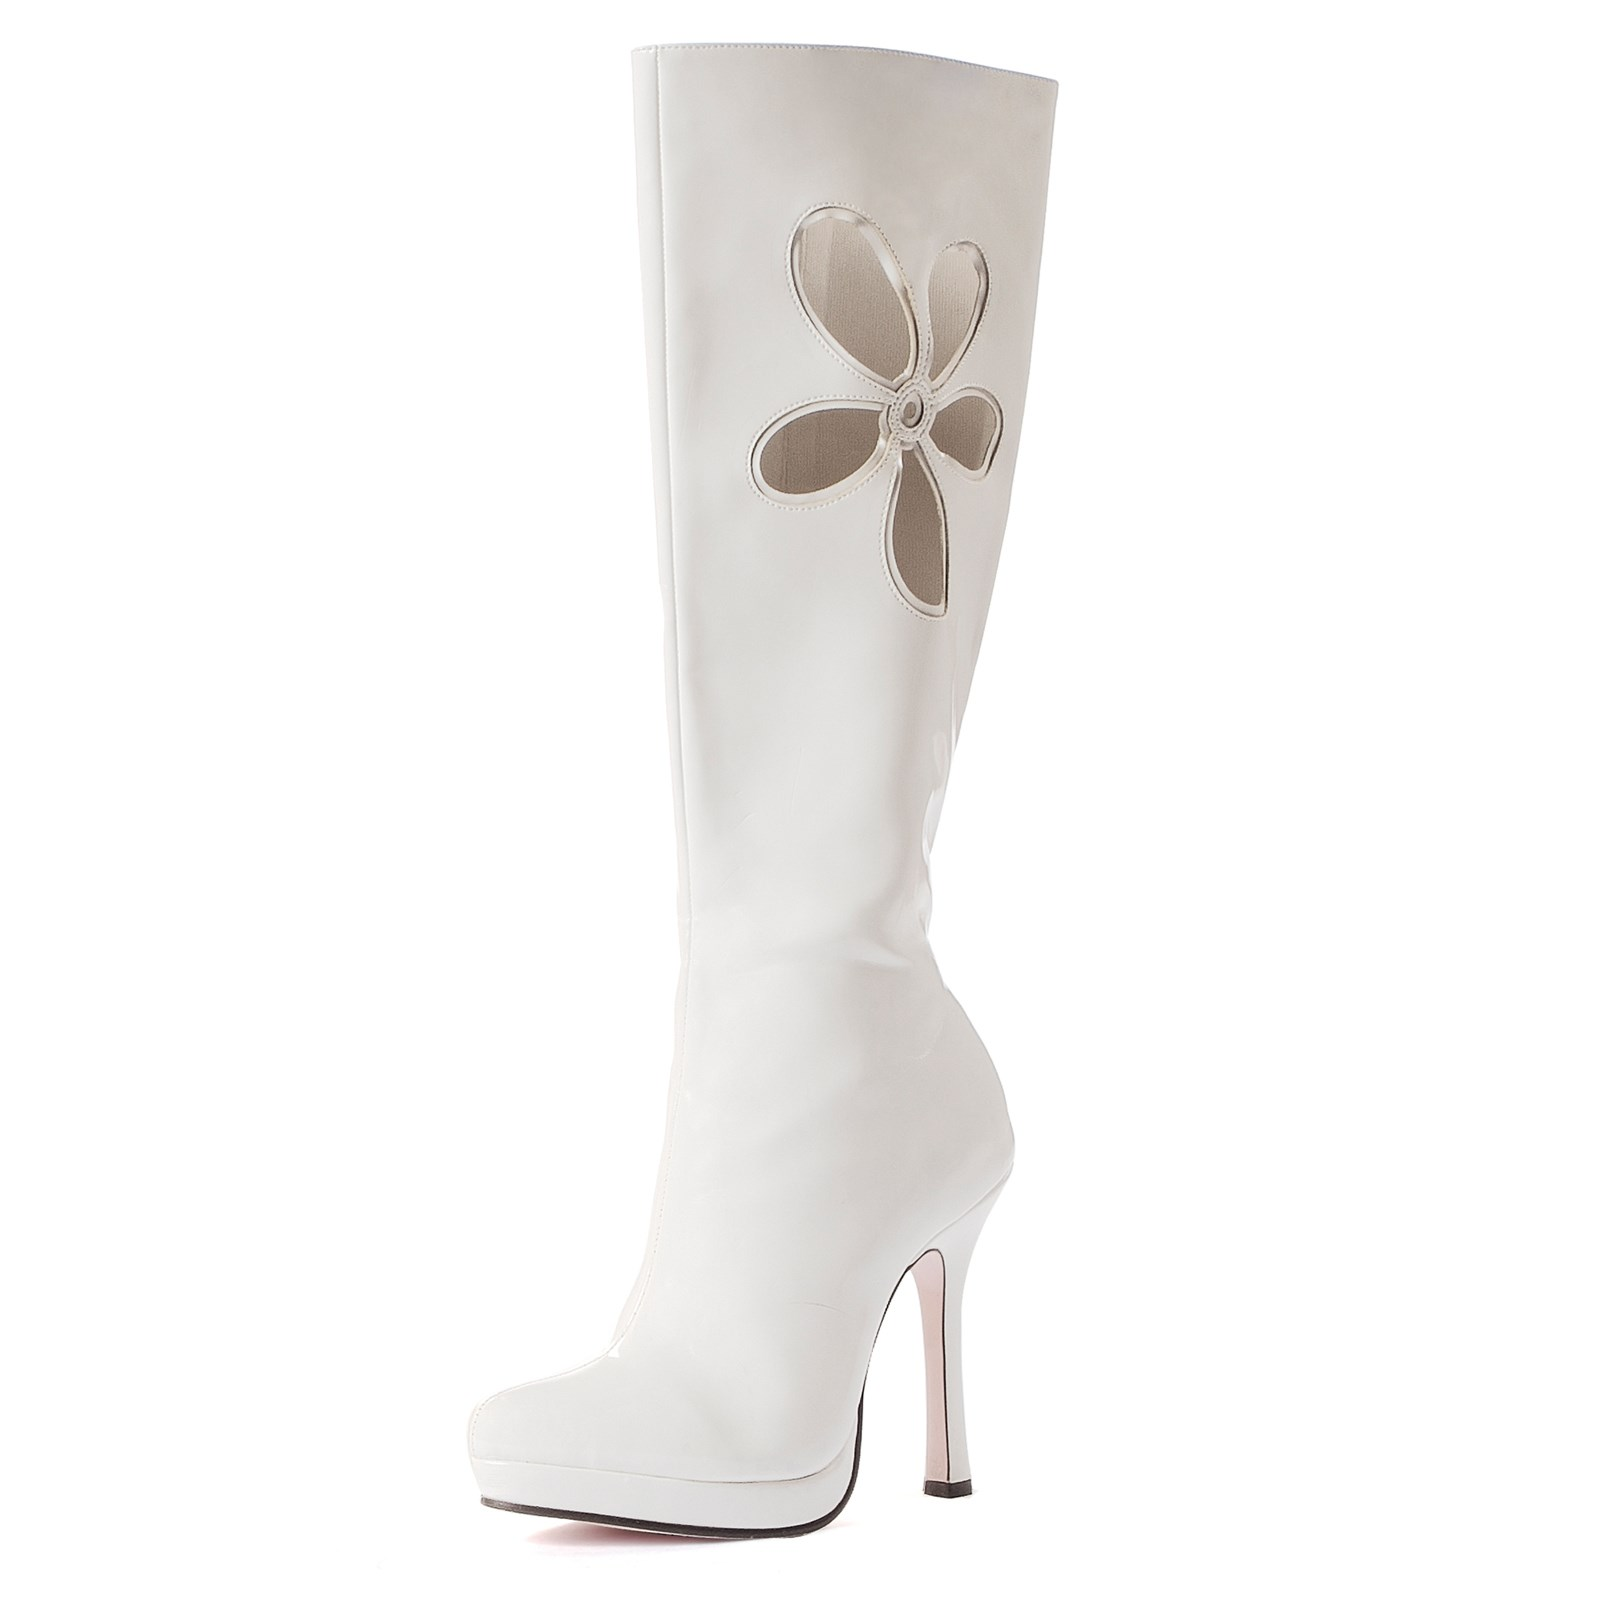 Lovechild White Adult Boots